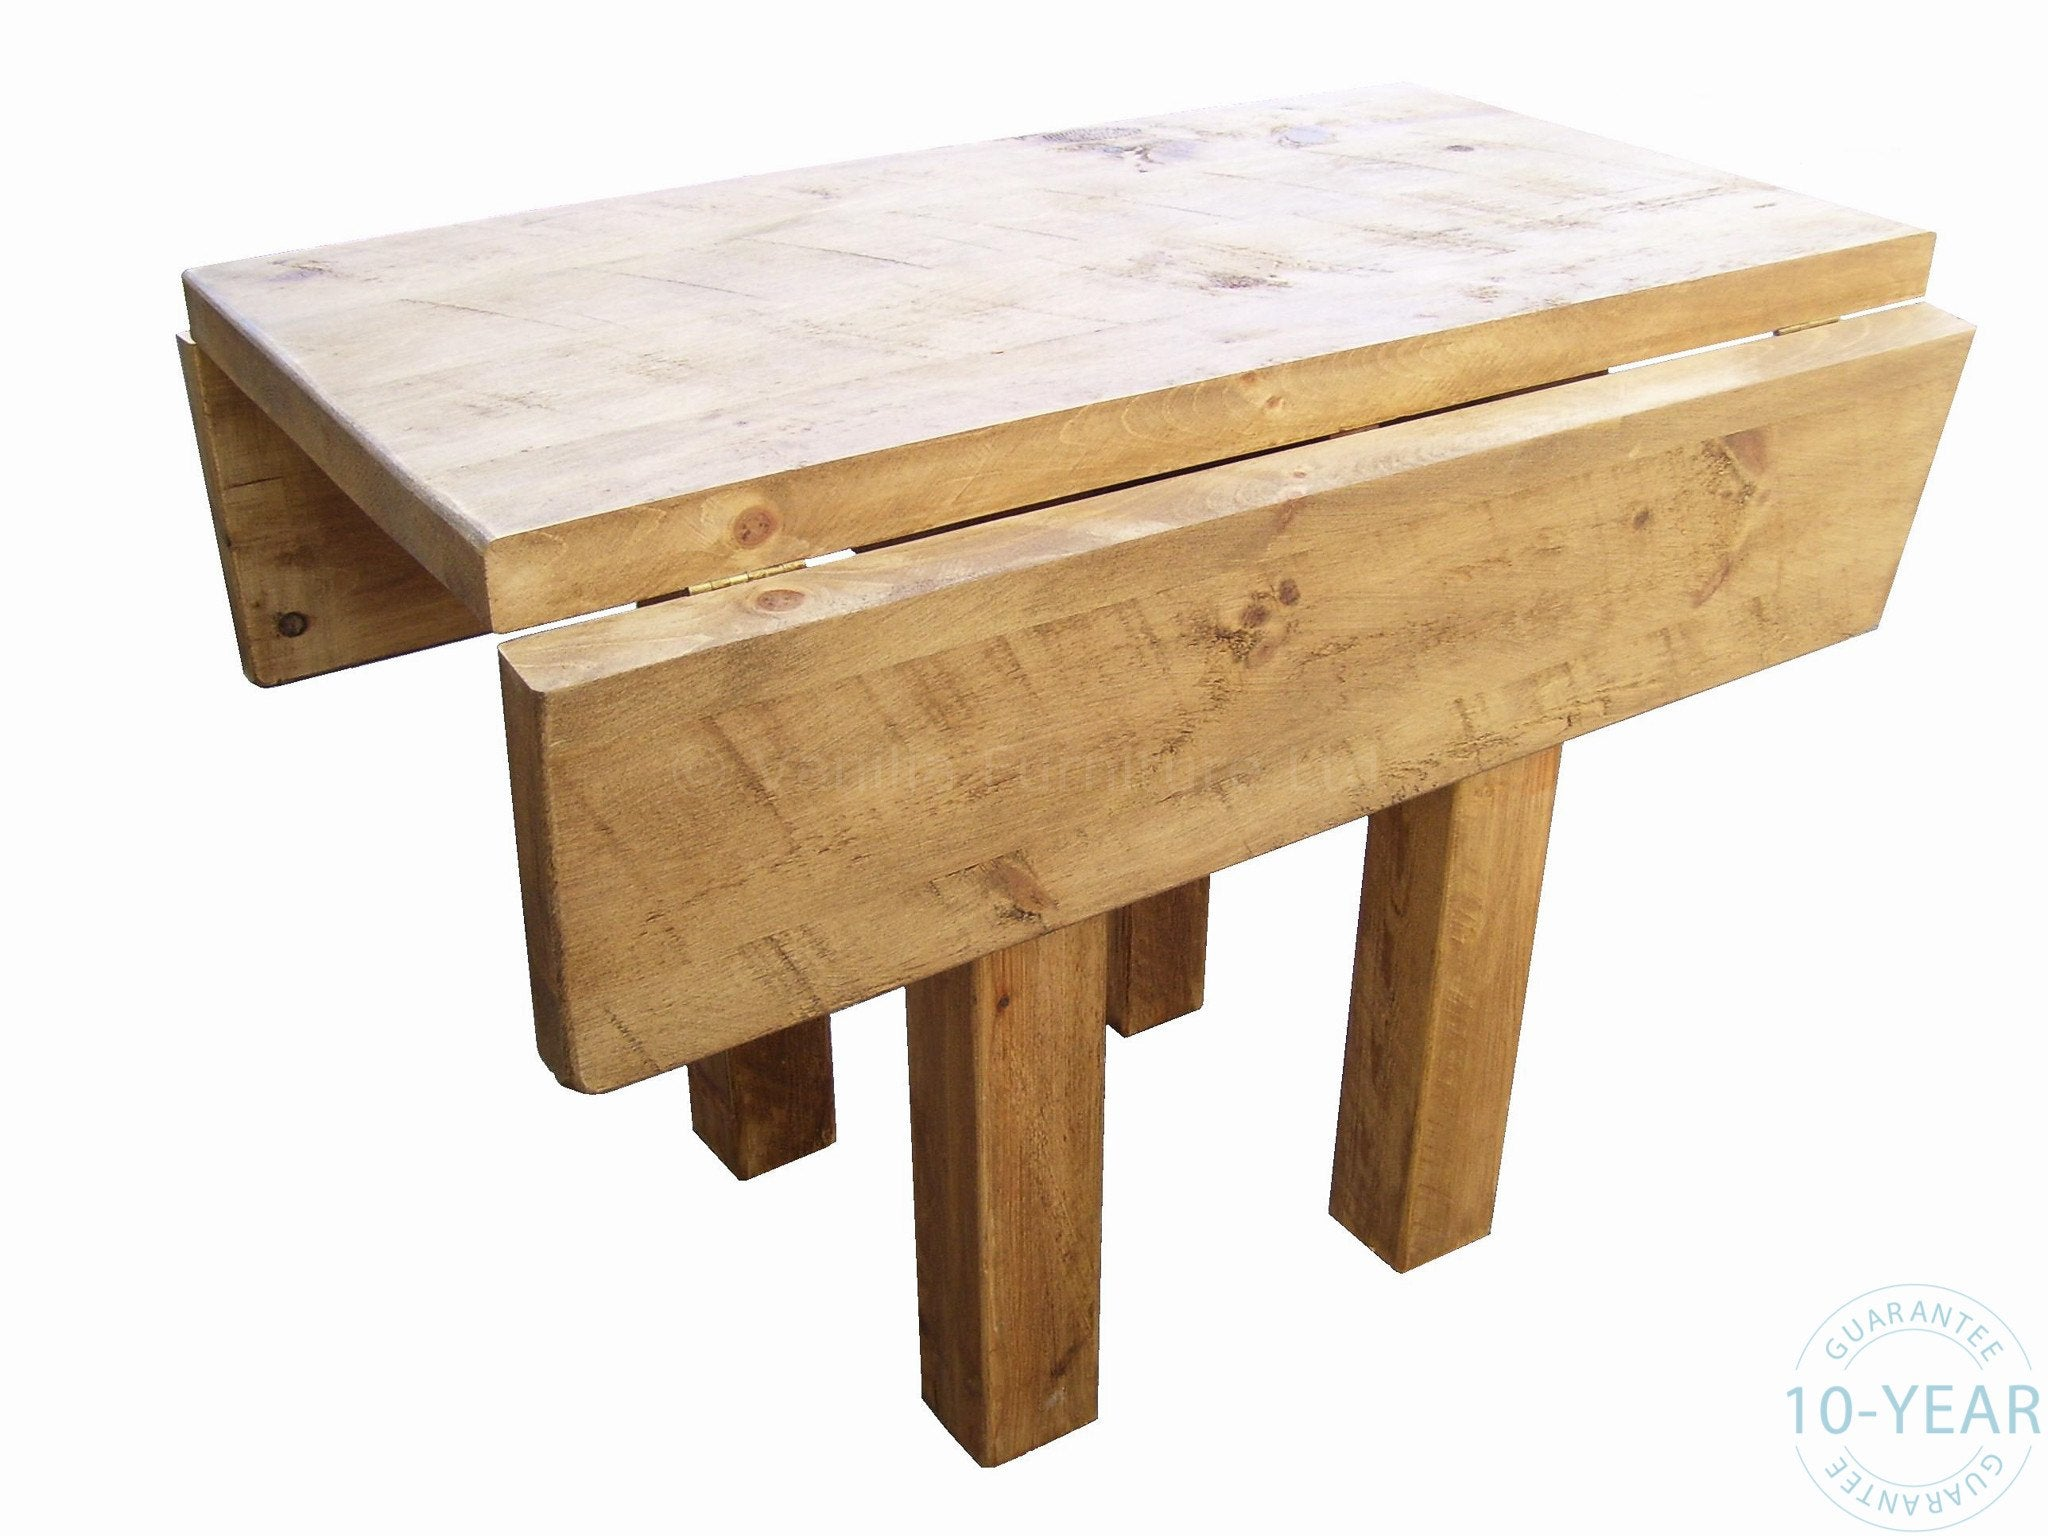 Rustic plank 39 drop leaf 39 kitchen dining table vanilla for Kitchen table with leaf